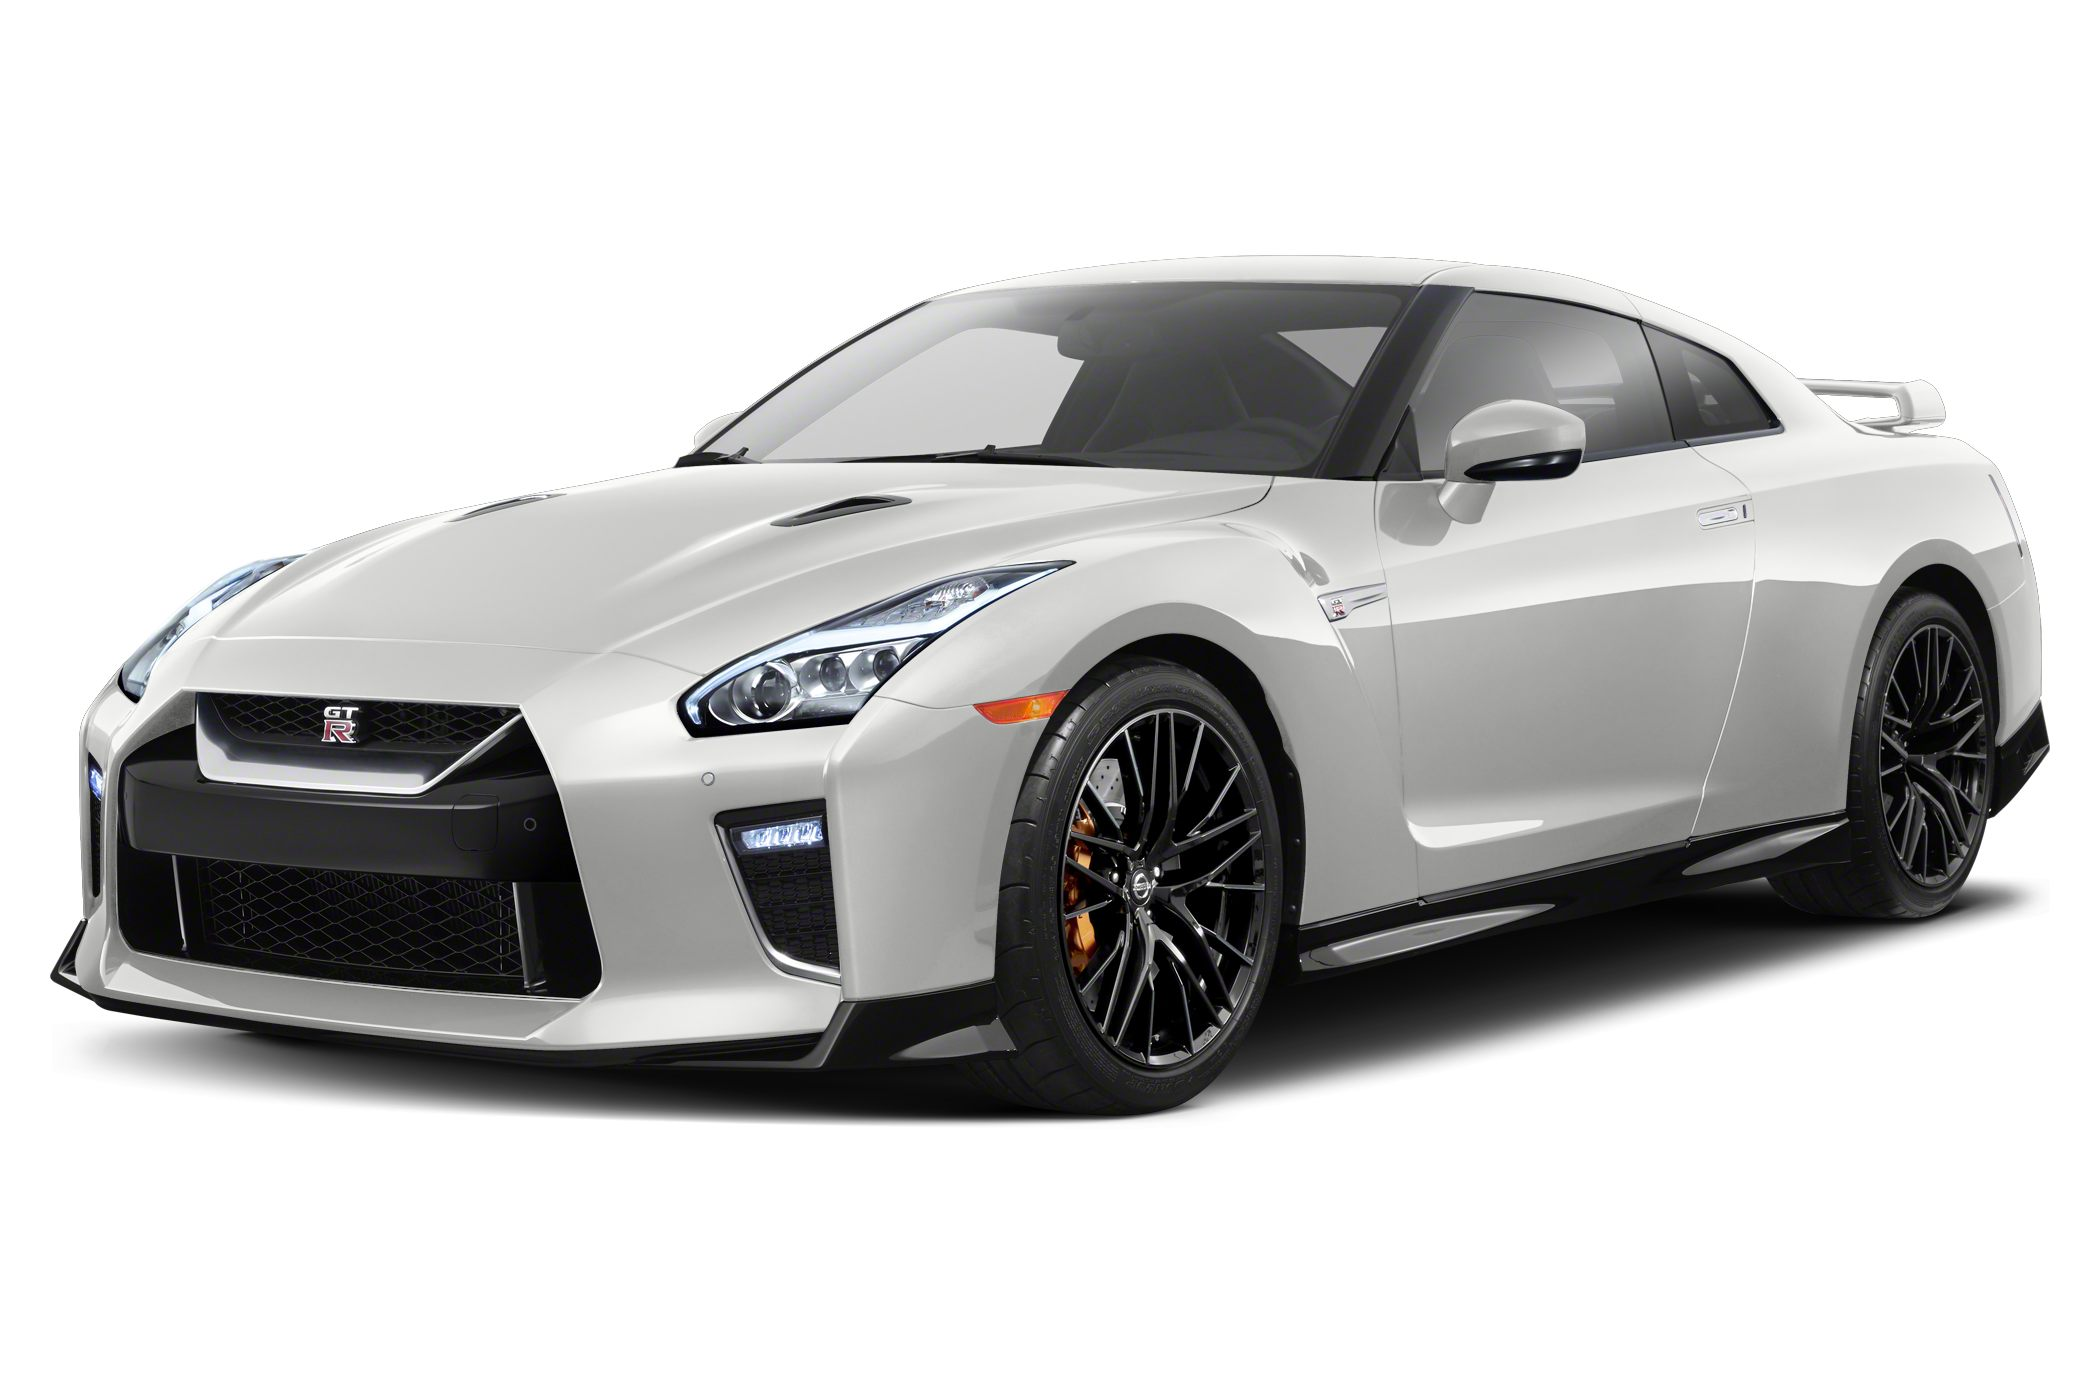 Nissan teams with Lego for 2020 GT-R Nismo